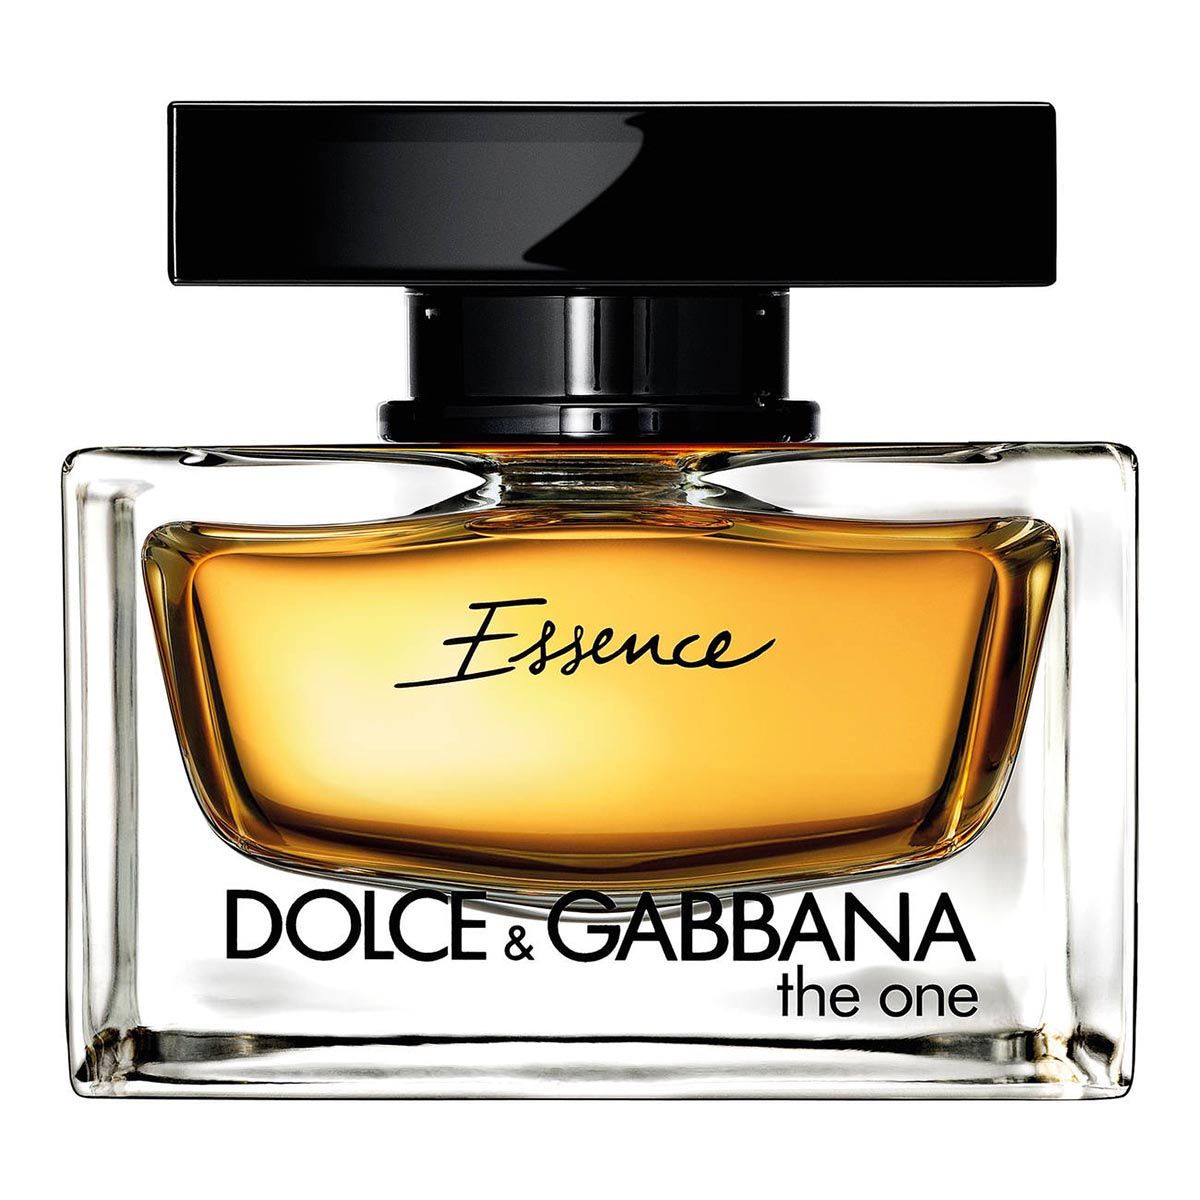 Dolce gabanna the one essence eau de parfum 40ml vaporizador